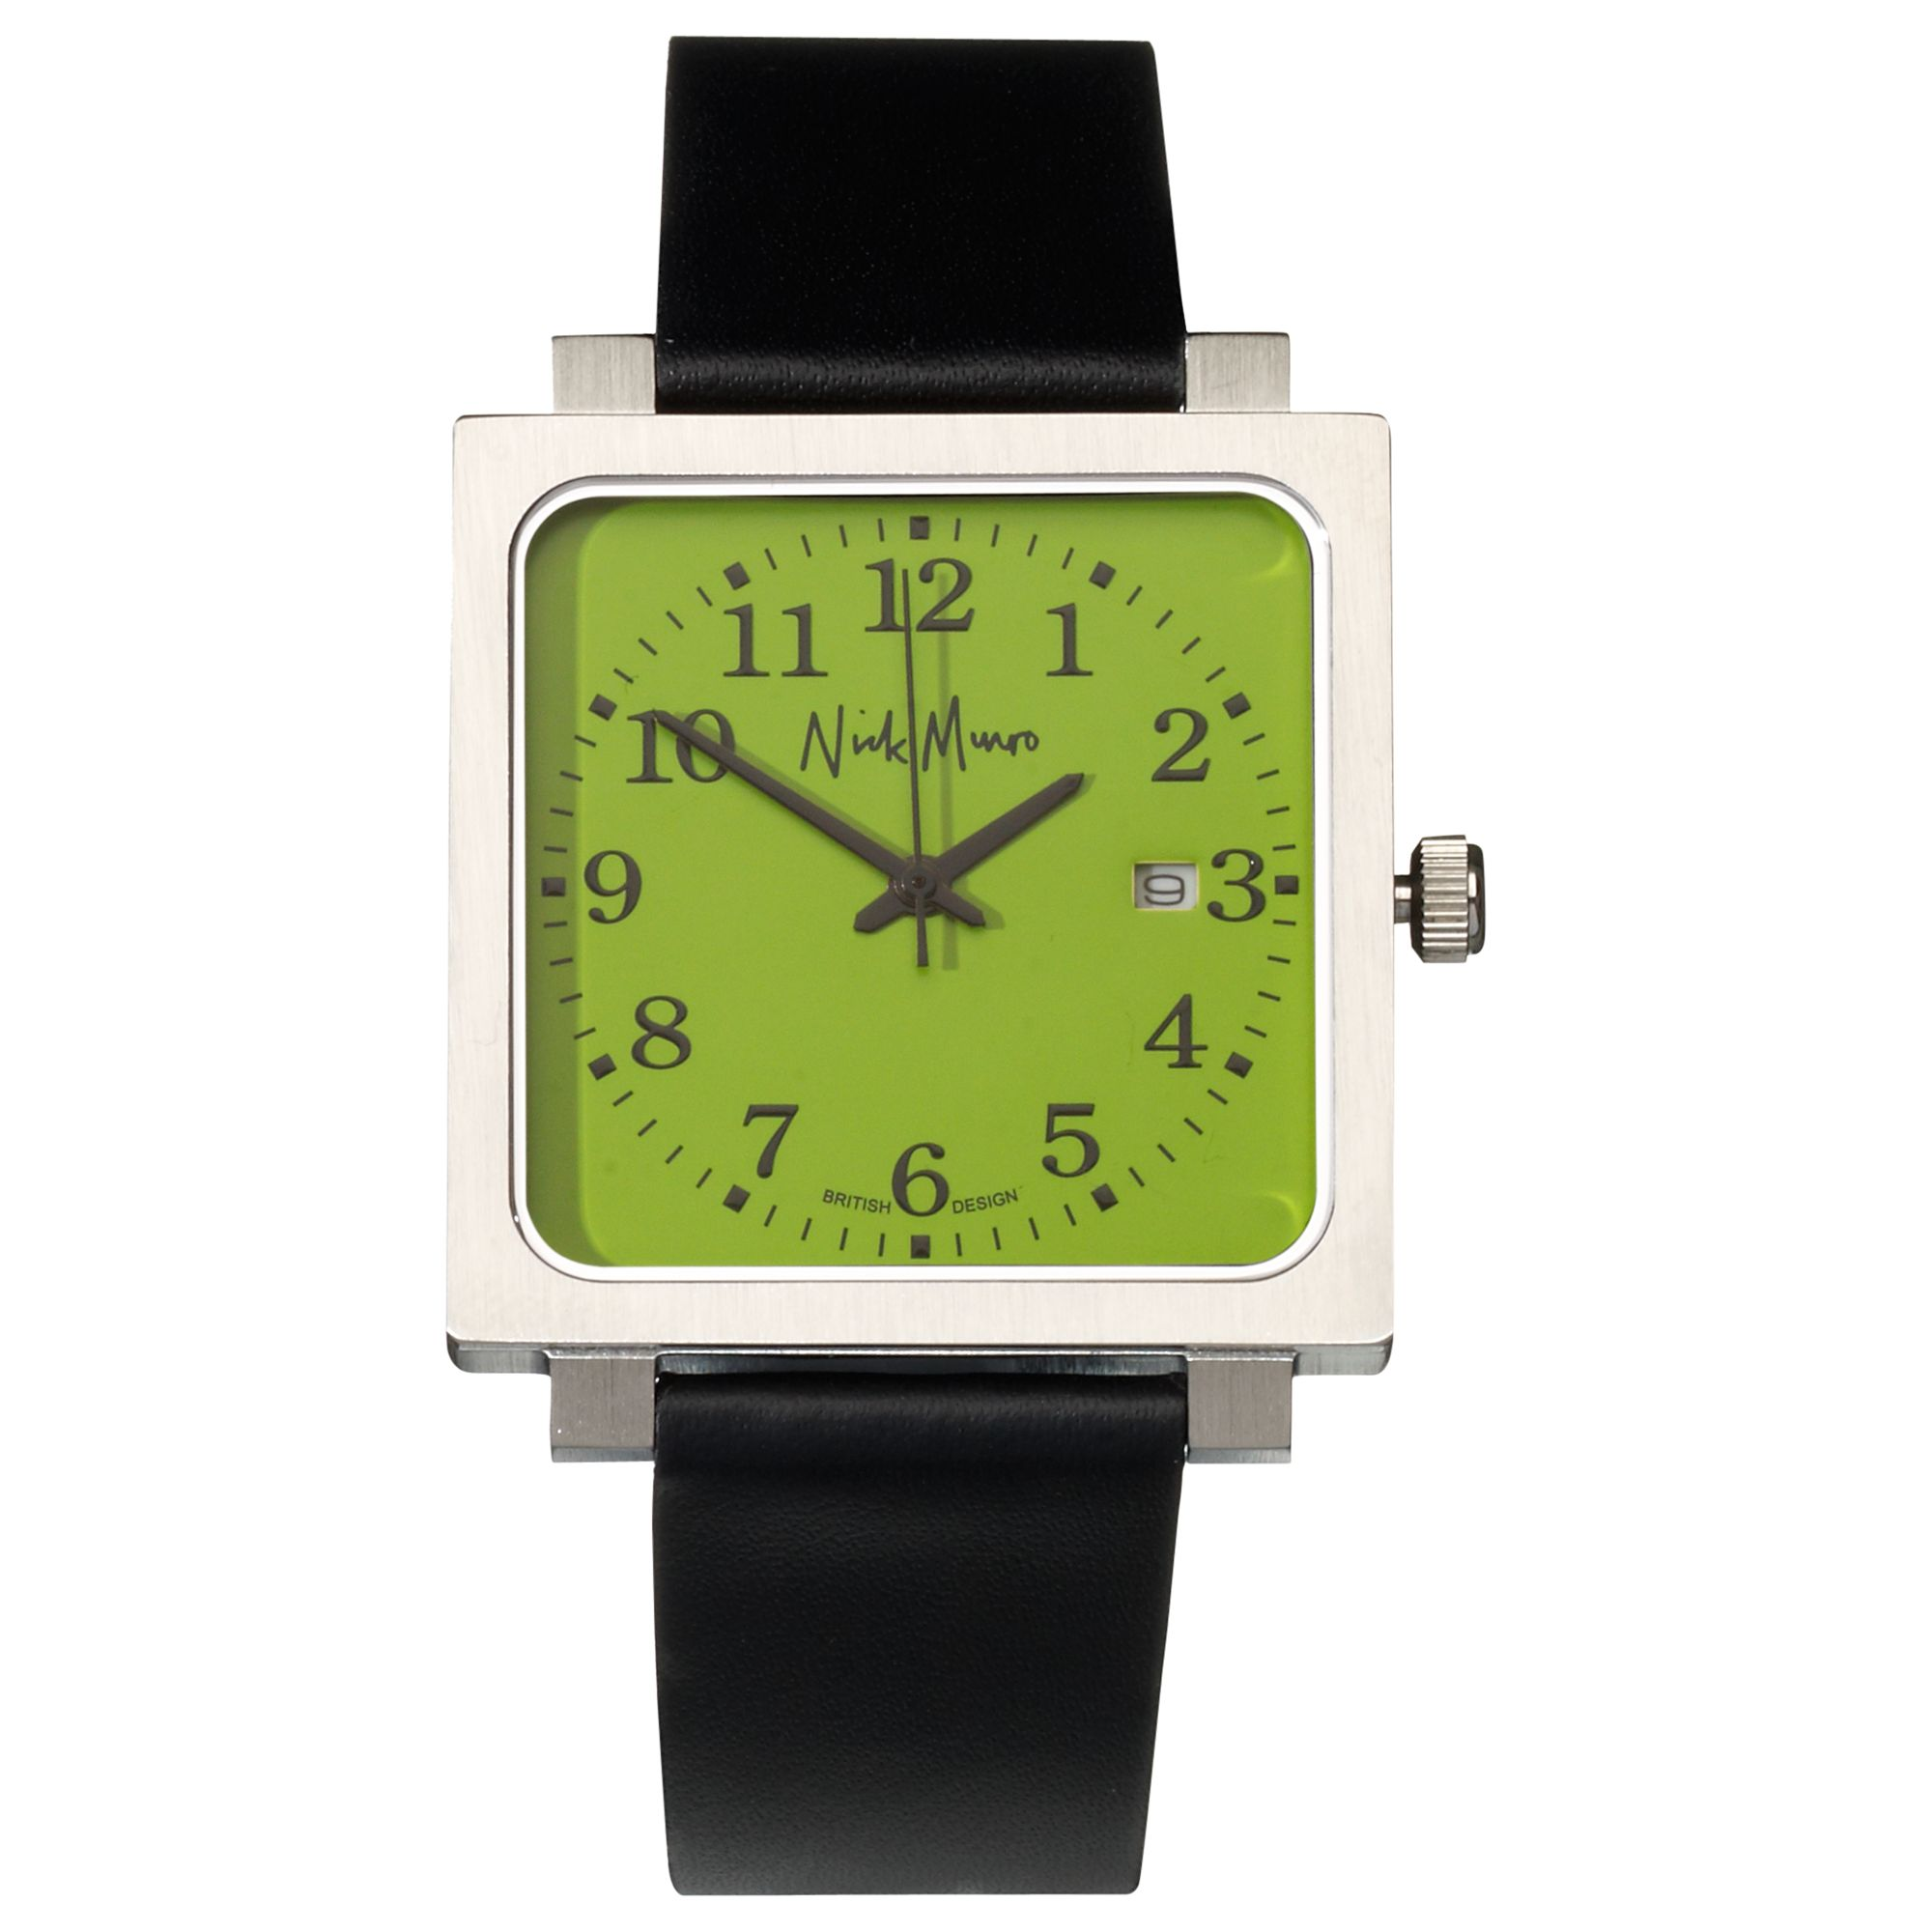 Nick Munro NM00124 Unisex Square Face Leather Strap Watch, Black/Green